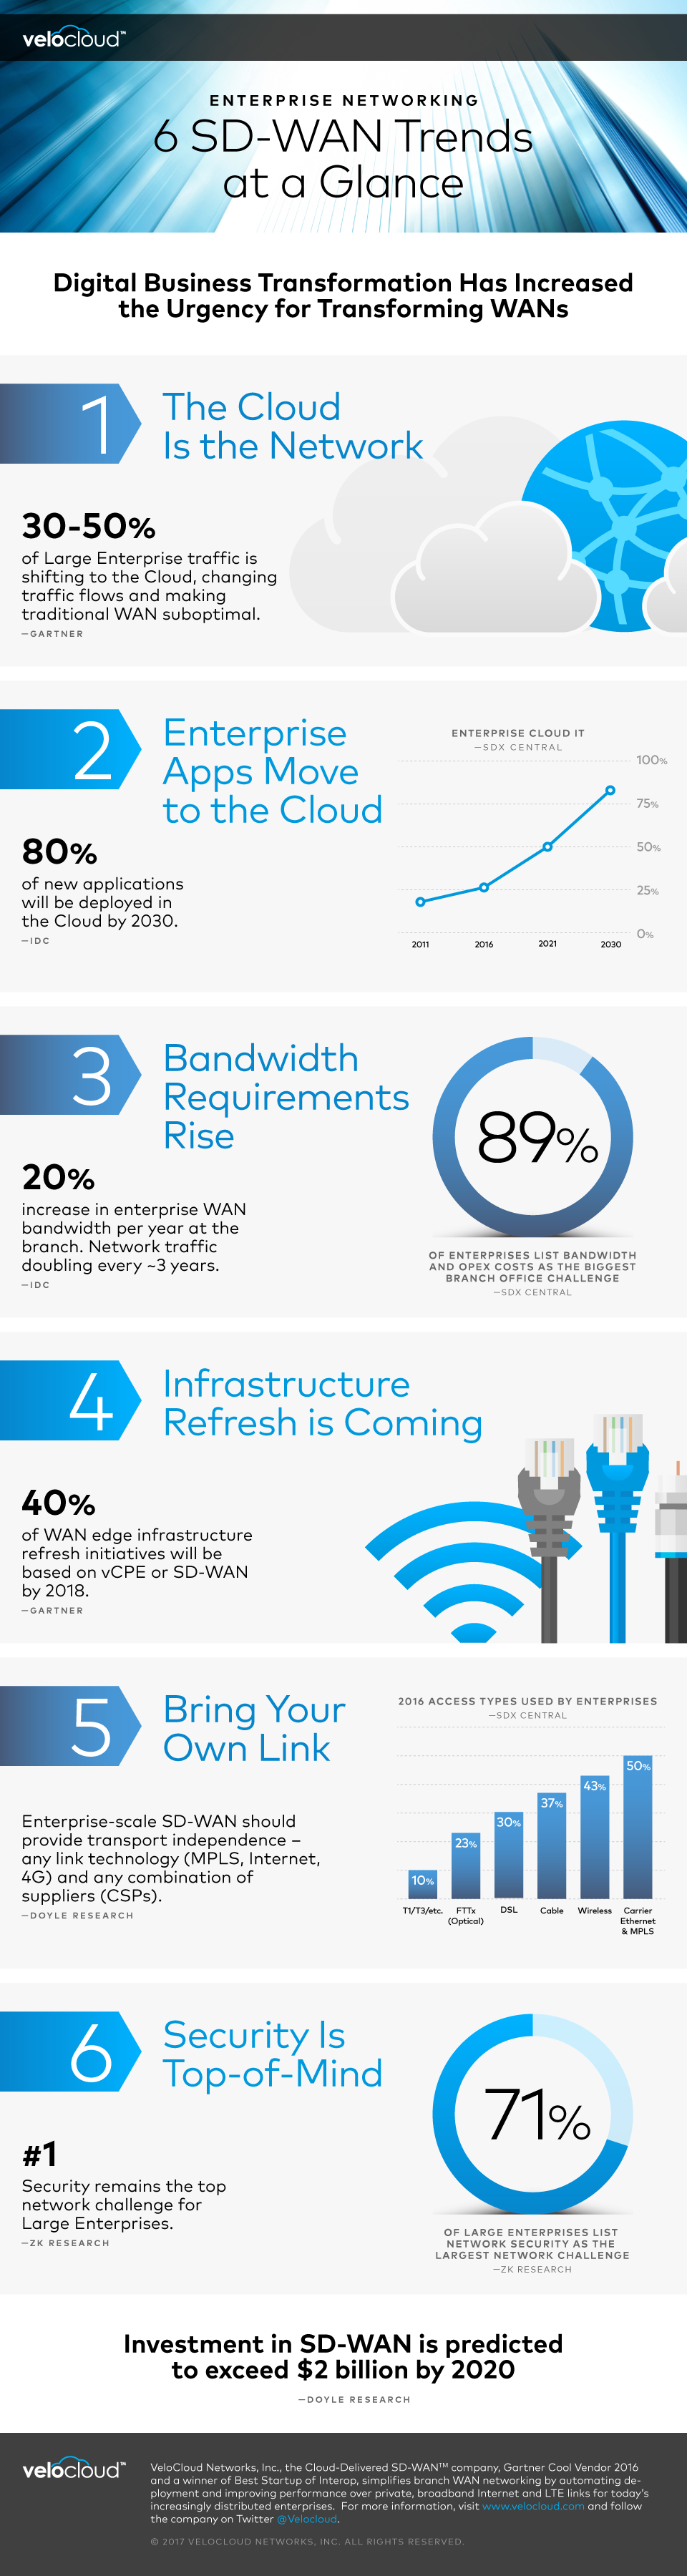 infographic-sd-wan-enterprise-trends.png